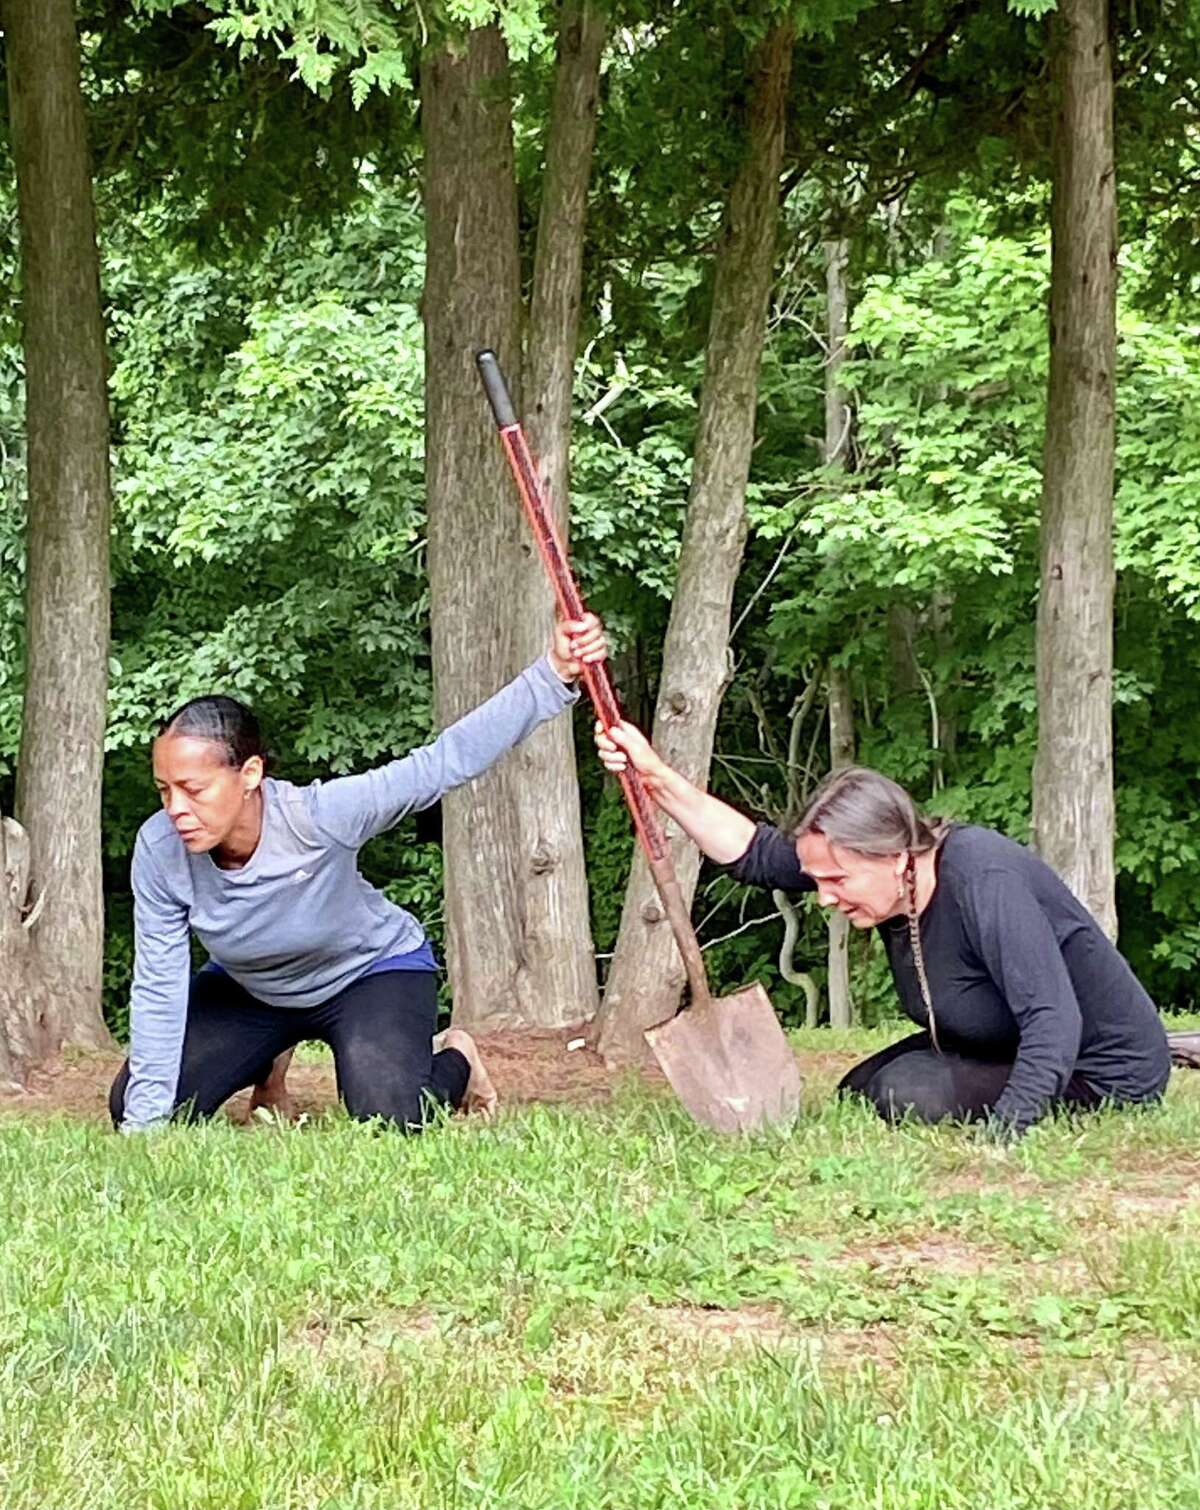 """The Middletown-based theater company ARTFARM presents """"Where Are We Now?: A Performative Grief & Healing Ritual to Tend Our Racial Wounds"""" at 6 p.m., June 25 - 27 outdoors on the campus of Middlesex Community College."""